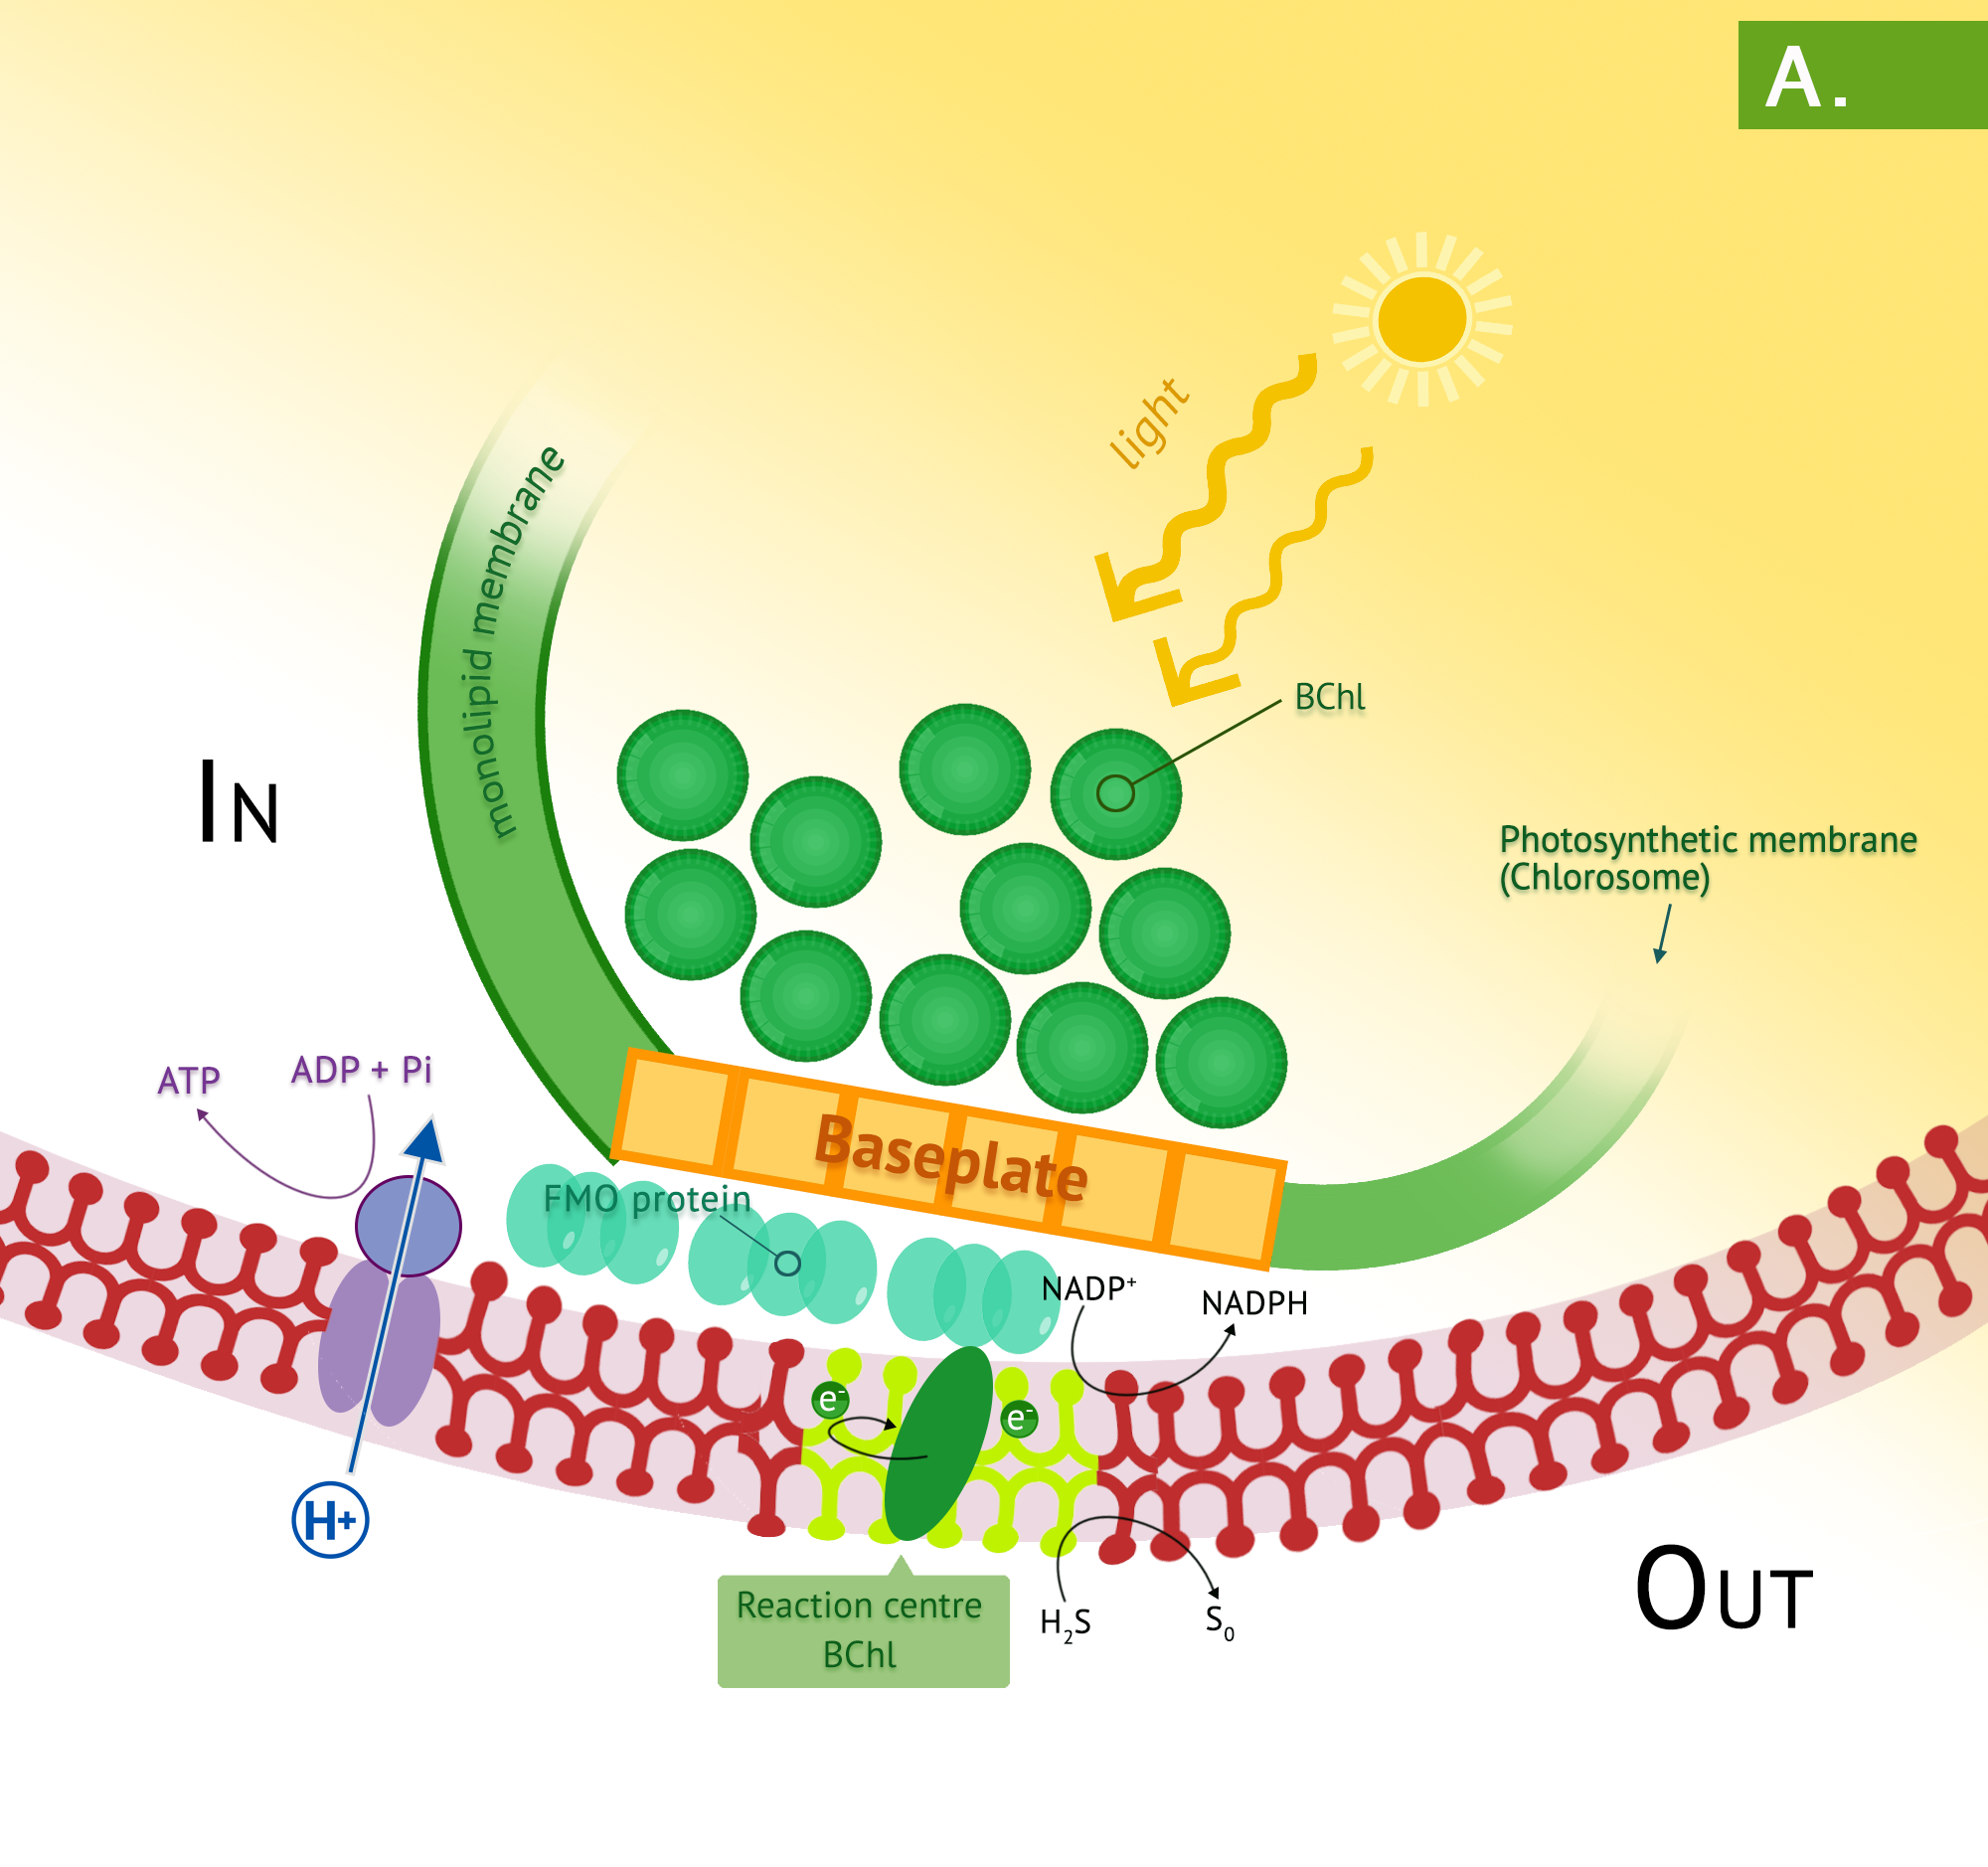 Panel A shows the chlorosomes of the green phototrophic bacteria. The photosynthetic antenna complex of the green phototrophs occurs in chlorosomes. These transfer energy to the green photosystem in the plasma membrane and PMF arising from the photosystem results in synthesis of ATP by the membrane-bound ATP synthase.